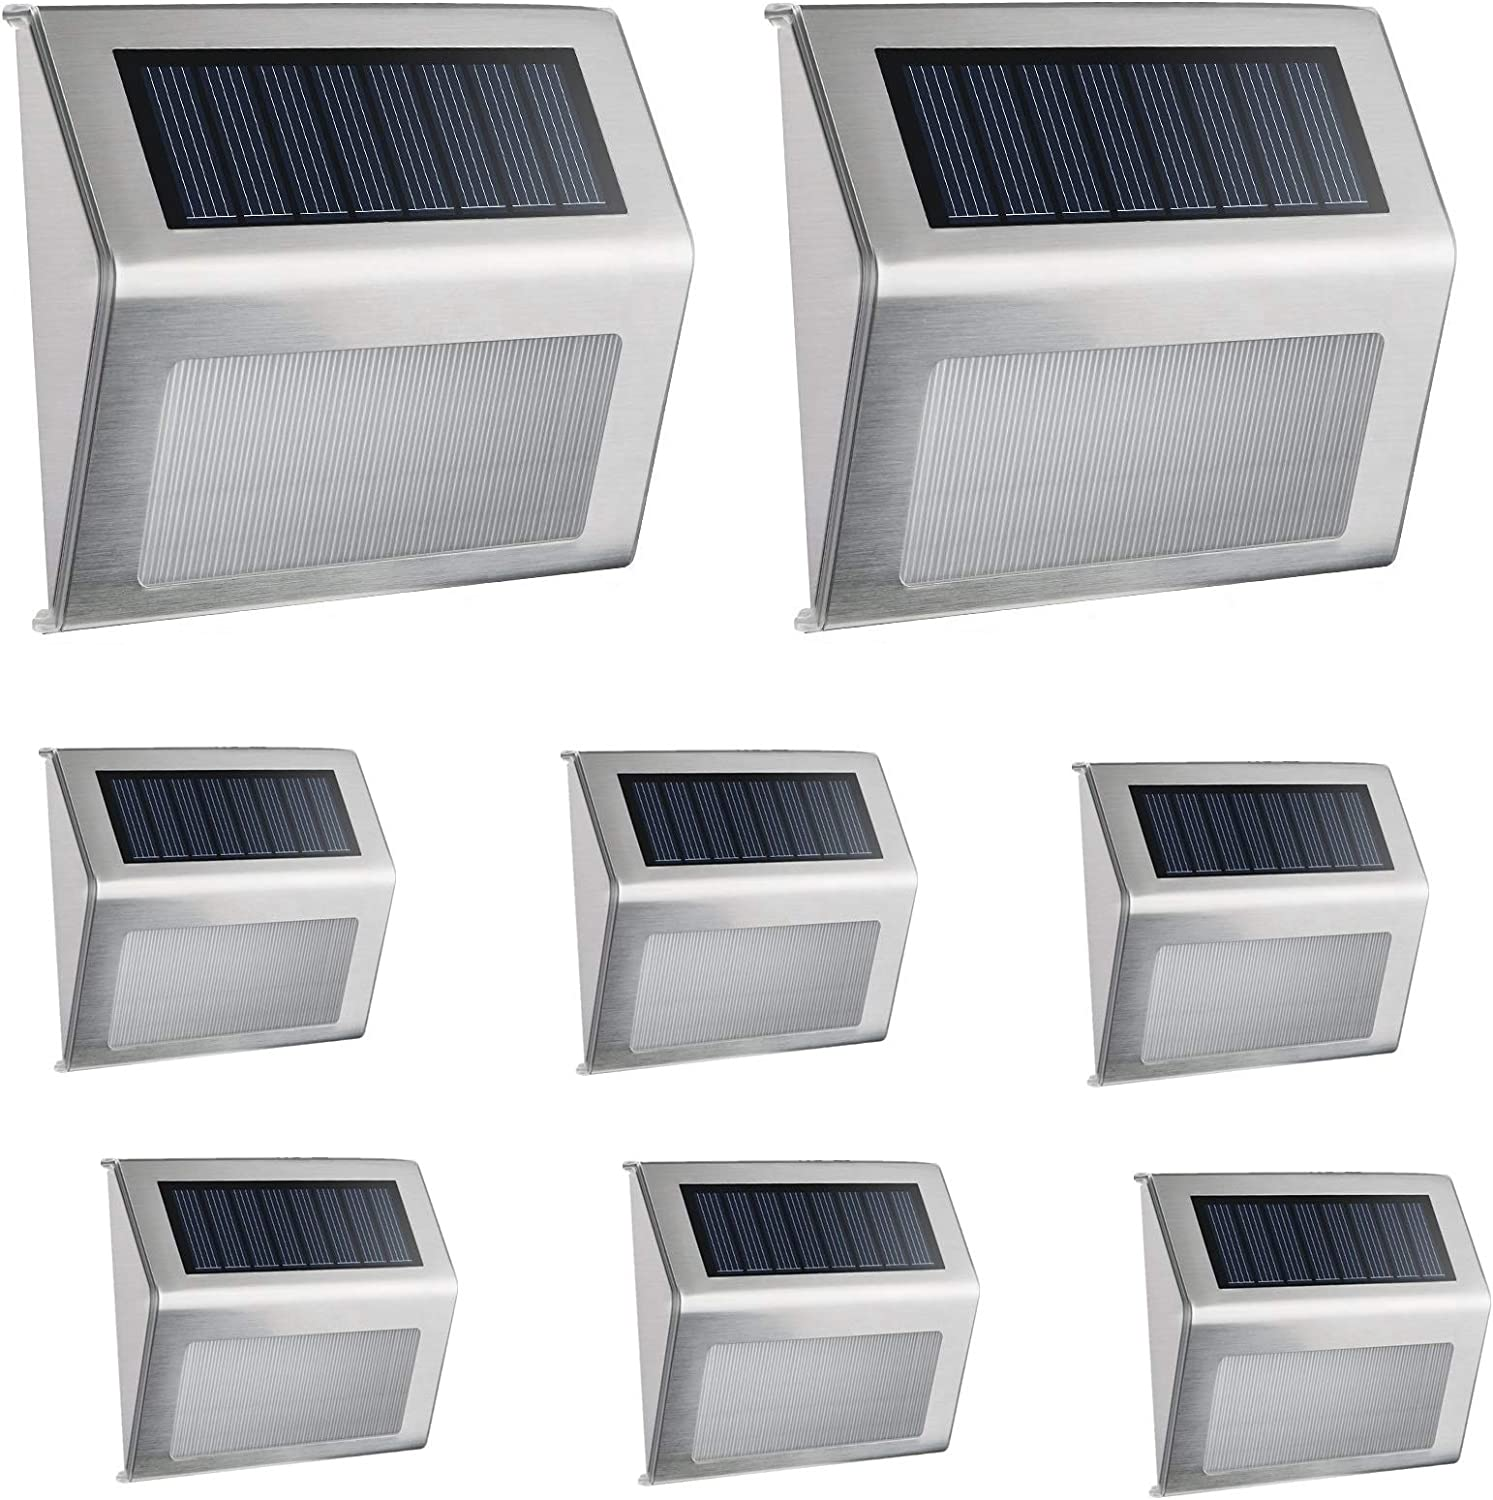 Solar Light,Outdoor Waterproof Stainless Steel Solar LED Step Light; Illuminates Stairs Patio Deck Yard Garden Outsides,Path,Fence Post lamp(8 Pack)